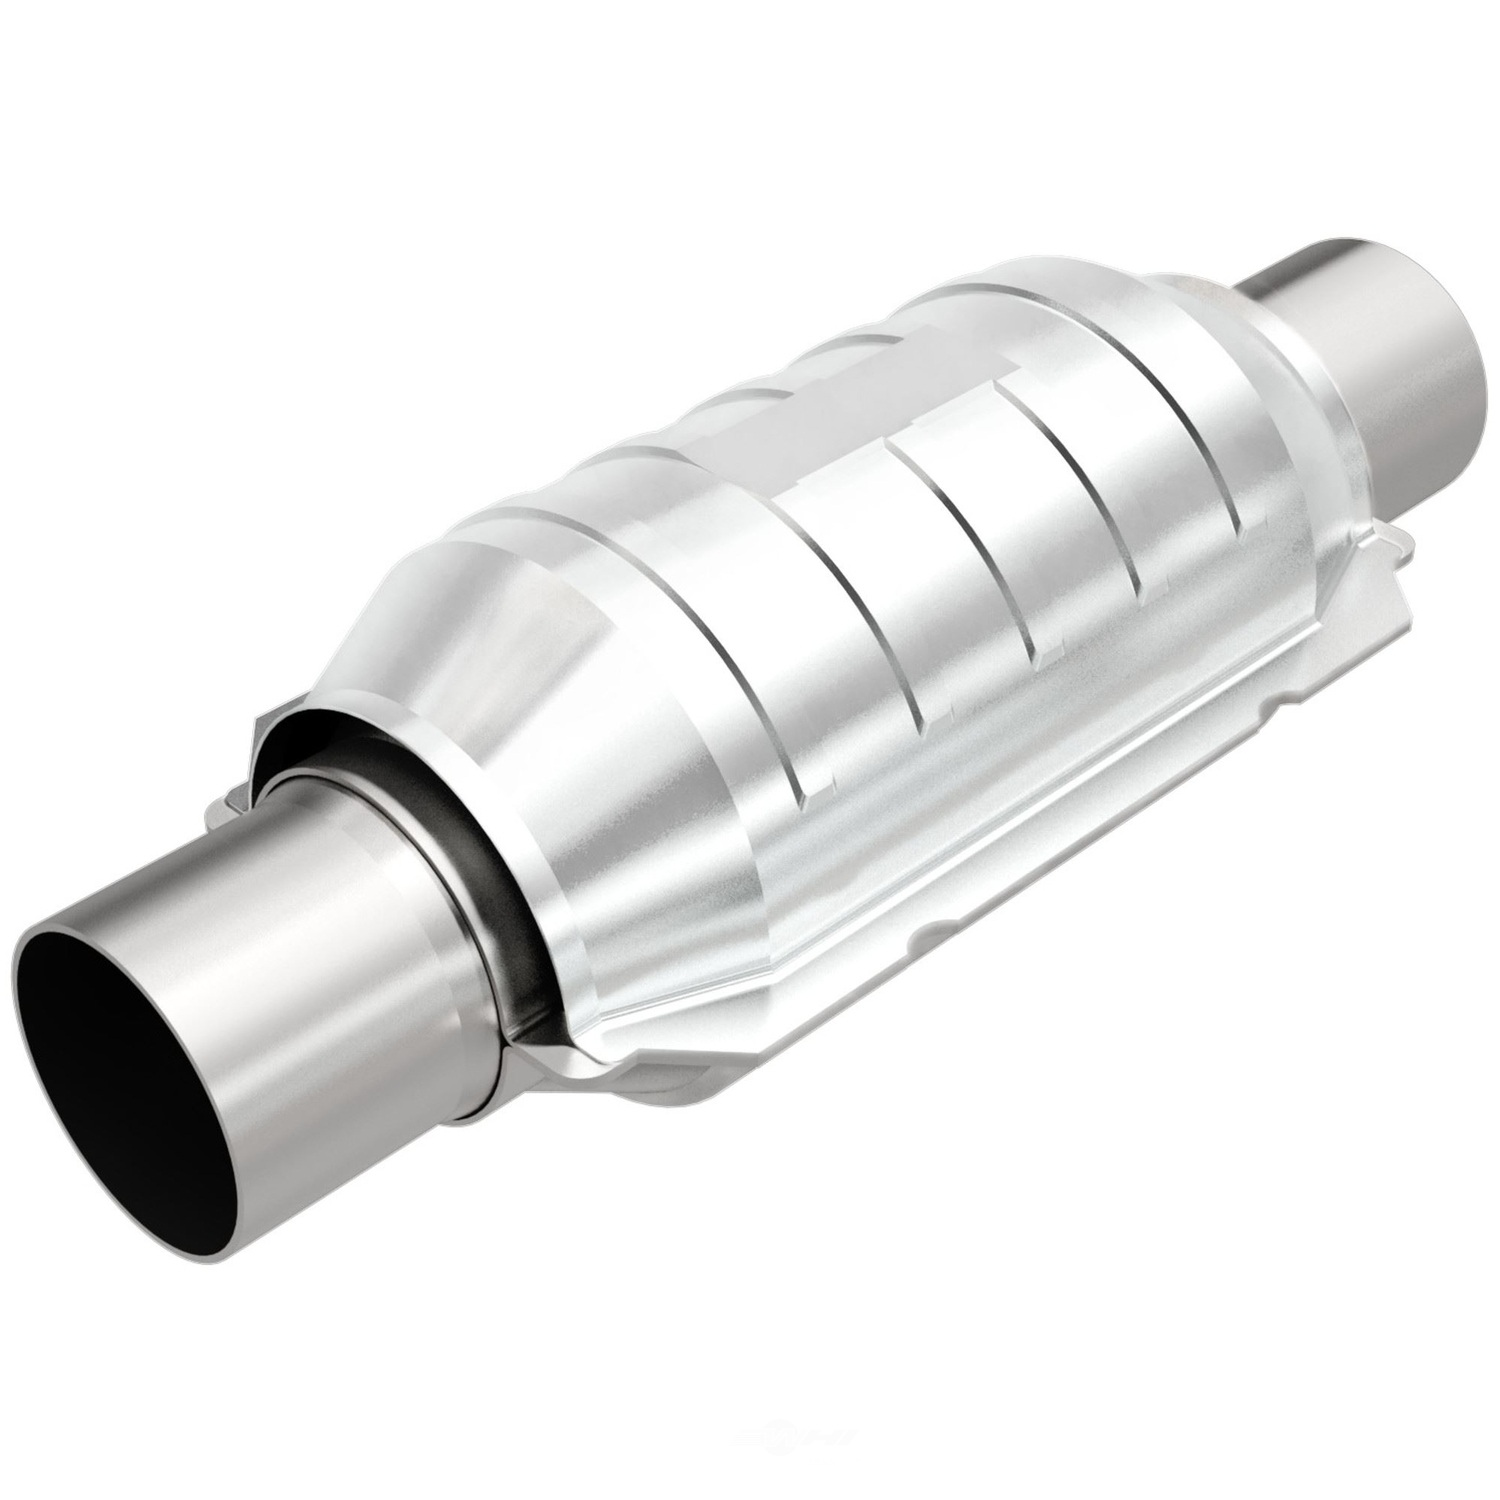 BREXHAUST 49 STATE CONVERTERS - BRExhaust Federal Universal Standard Load OBDII Catalytic Converter - BSF 093-2015